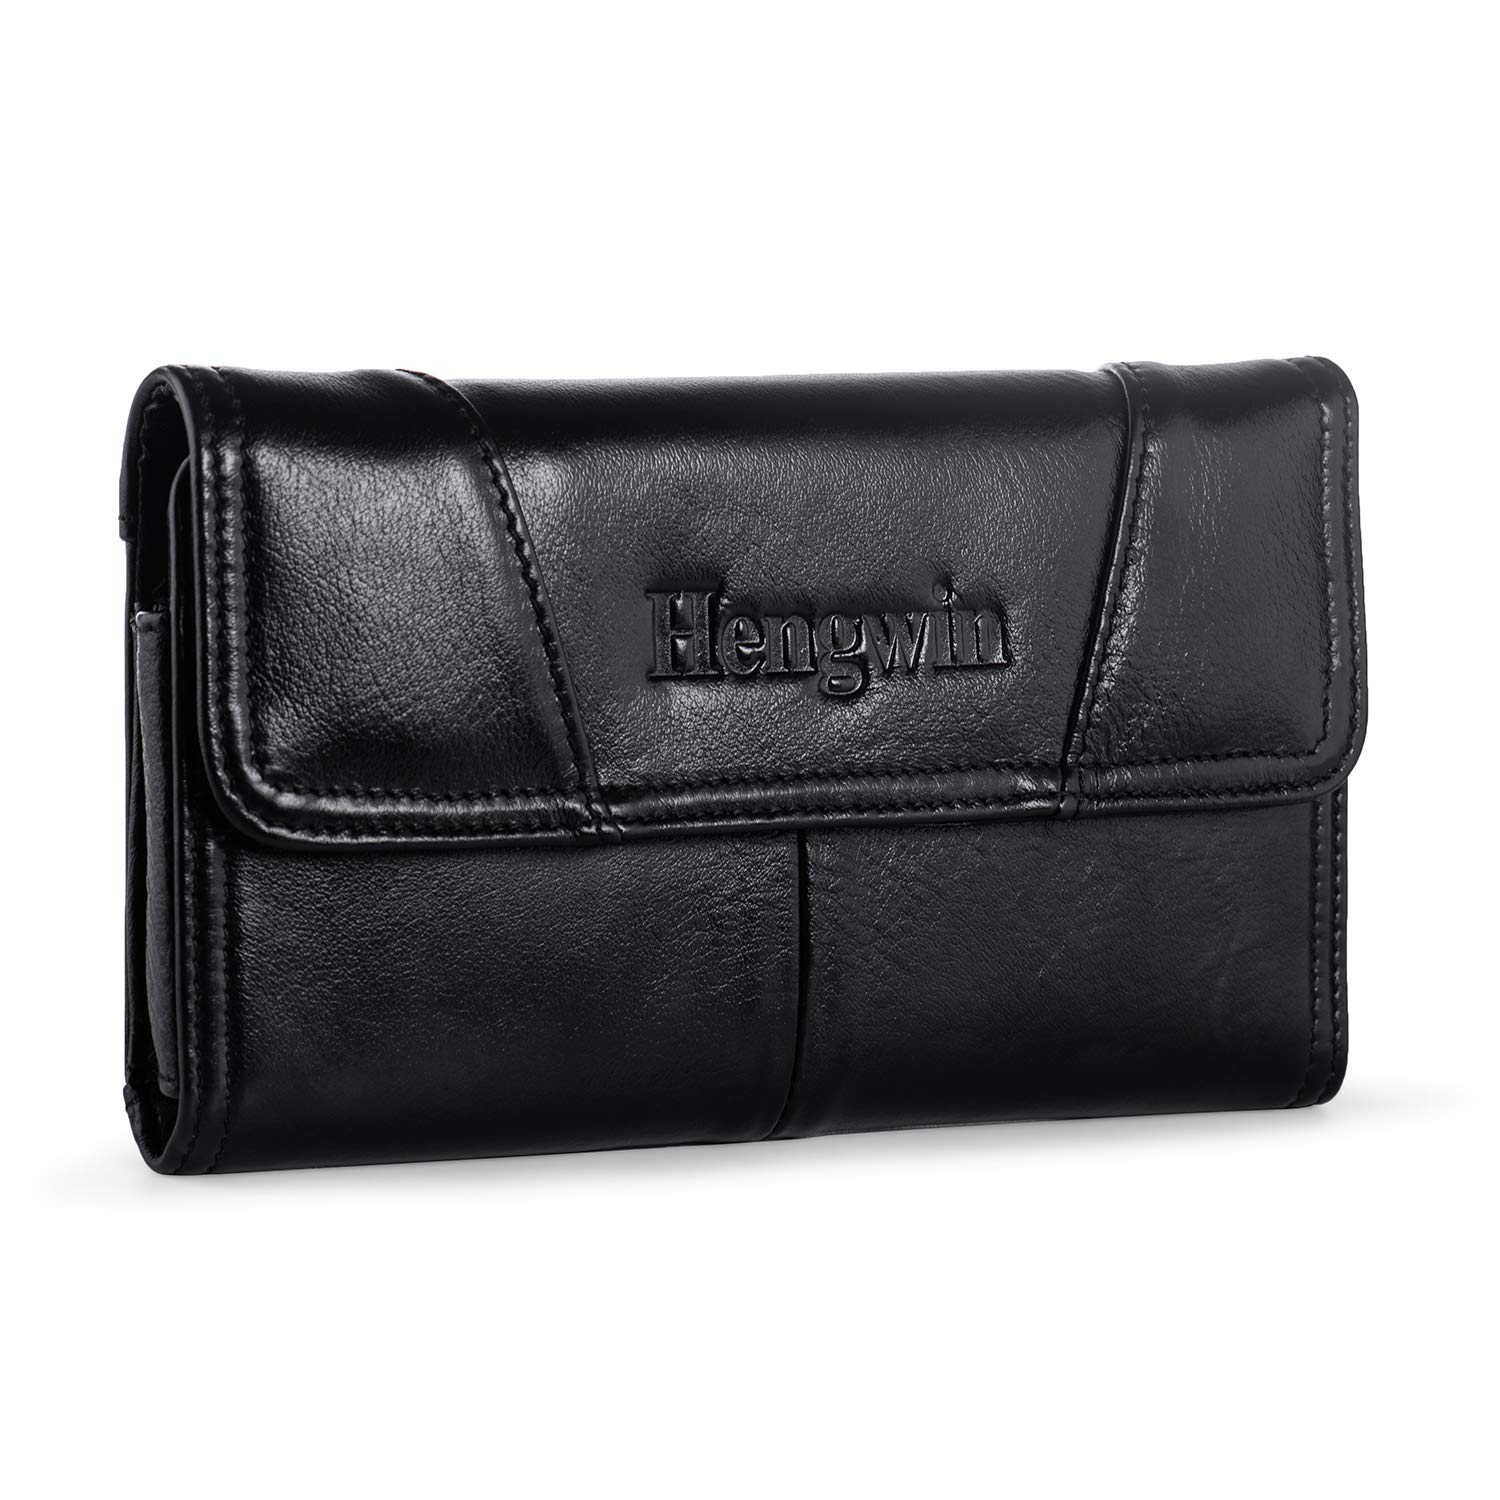 Hengwin iPhone 8 Plus Holster Case Belt Loop Phone Pouch Holster Case iPhone Xs Max Belt Holster Men Purse Leather Waist Bag for iPhone 7 6S Plus Samsung Galaxy Samsung S9 S8 Plus Note 5 4 (Black)